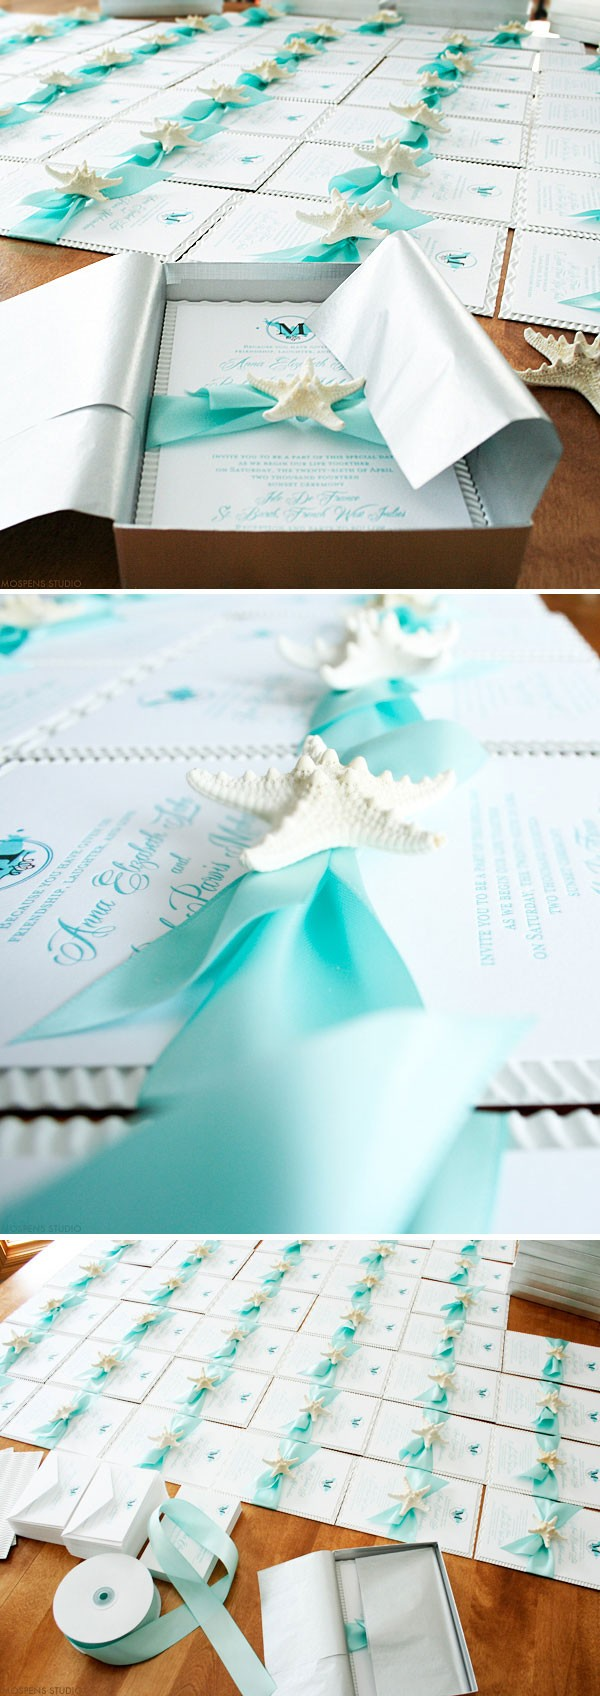 Beautiful Beach Wedding Invitations - The sea-worthy design features original art, ribbon, starfish, tissue paper, and invitation box. Completely customizable! Available online www.mospensstudio.com